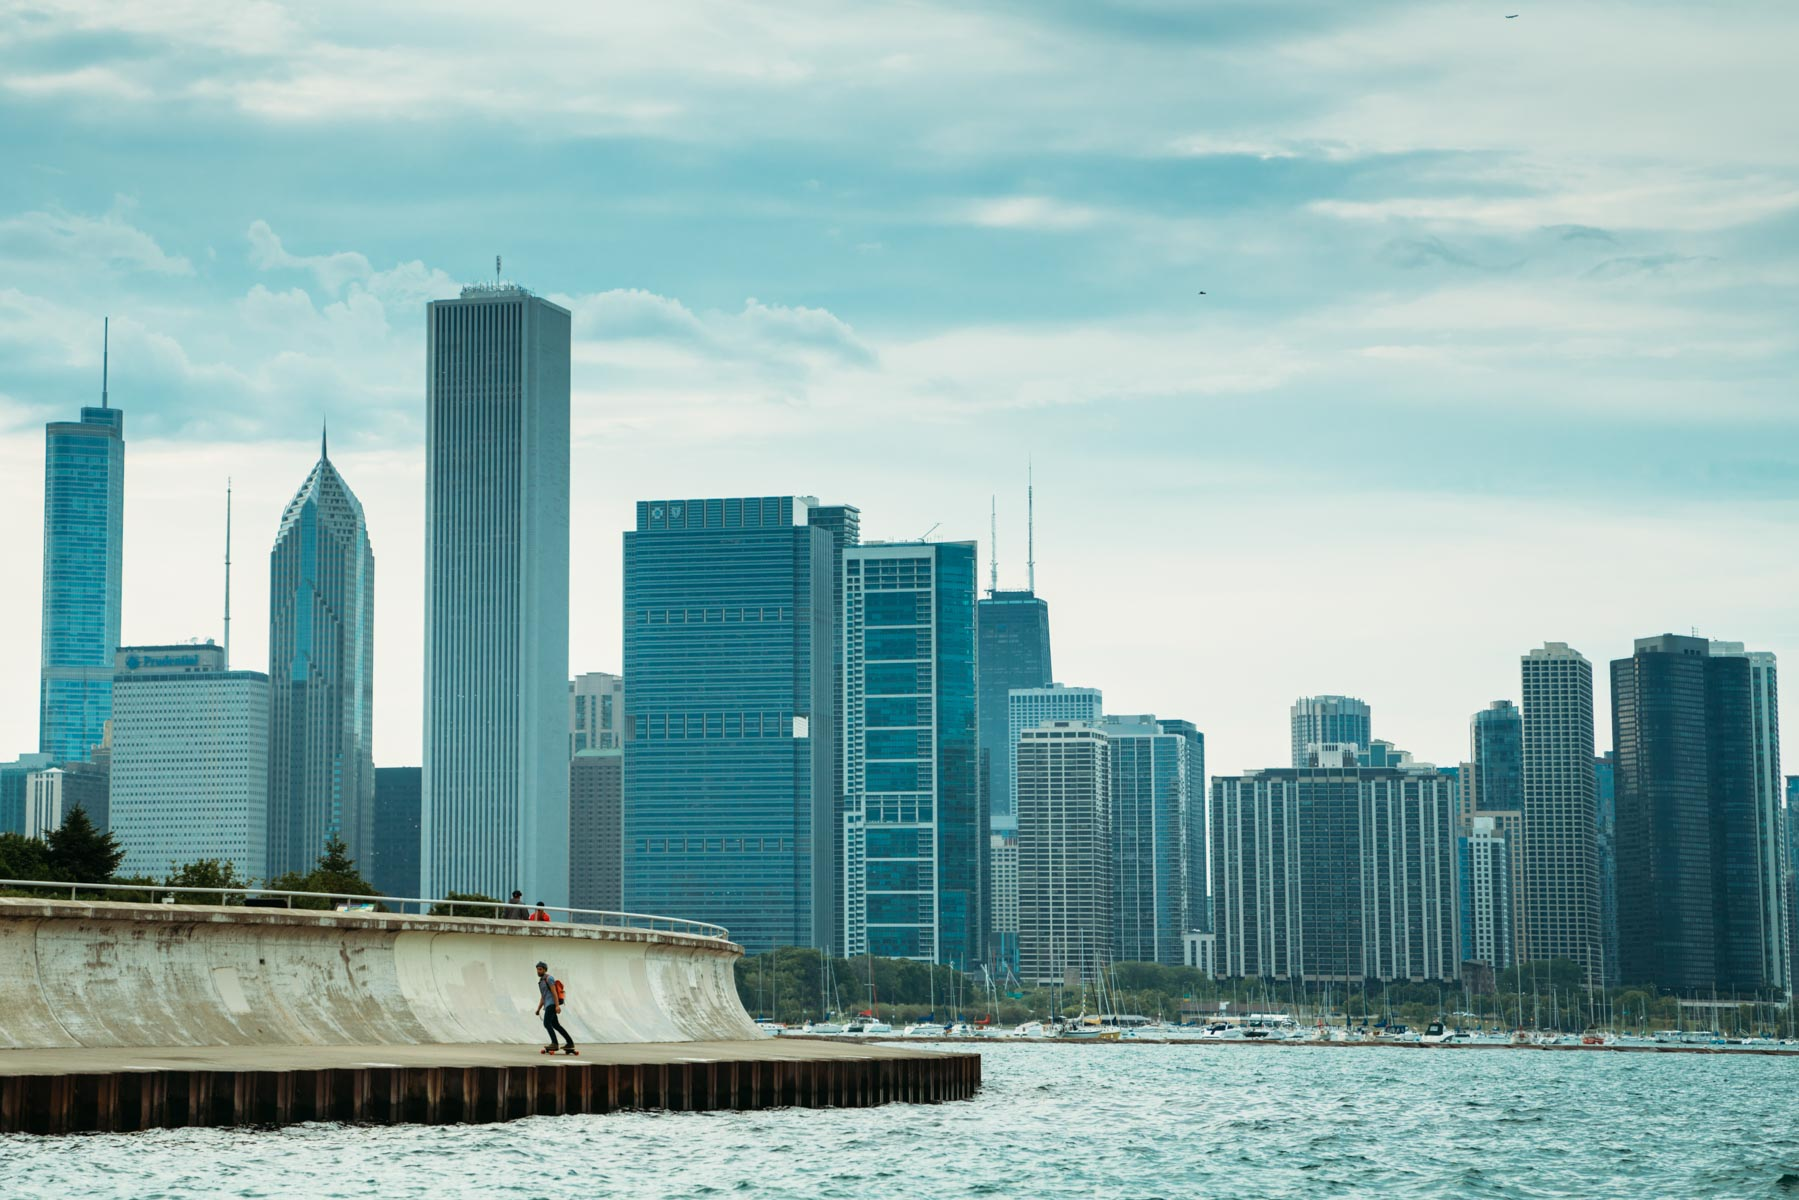 kyson-dana-boosted-boards-chicago-6.jpg